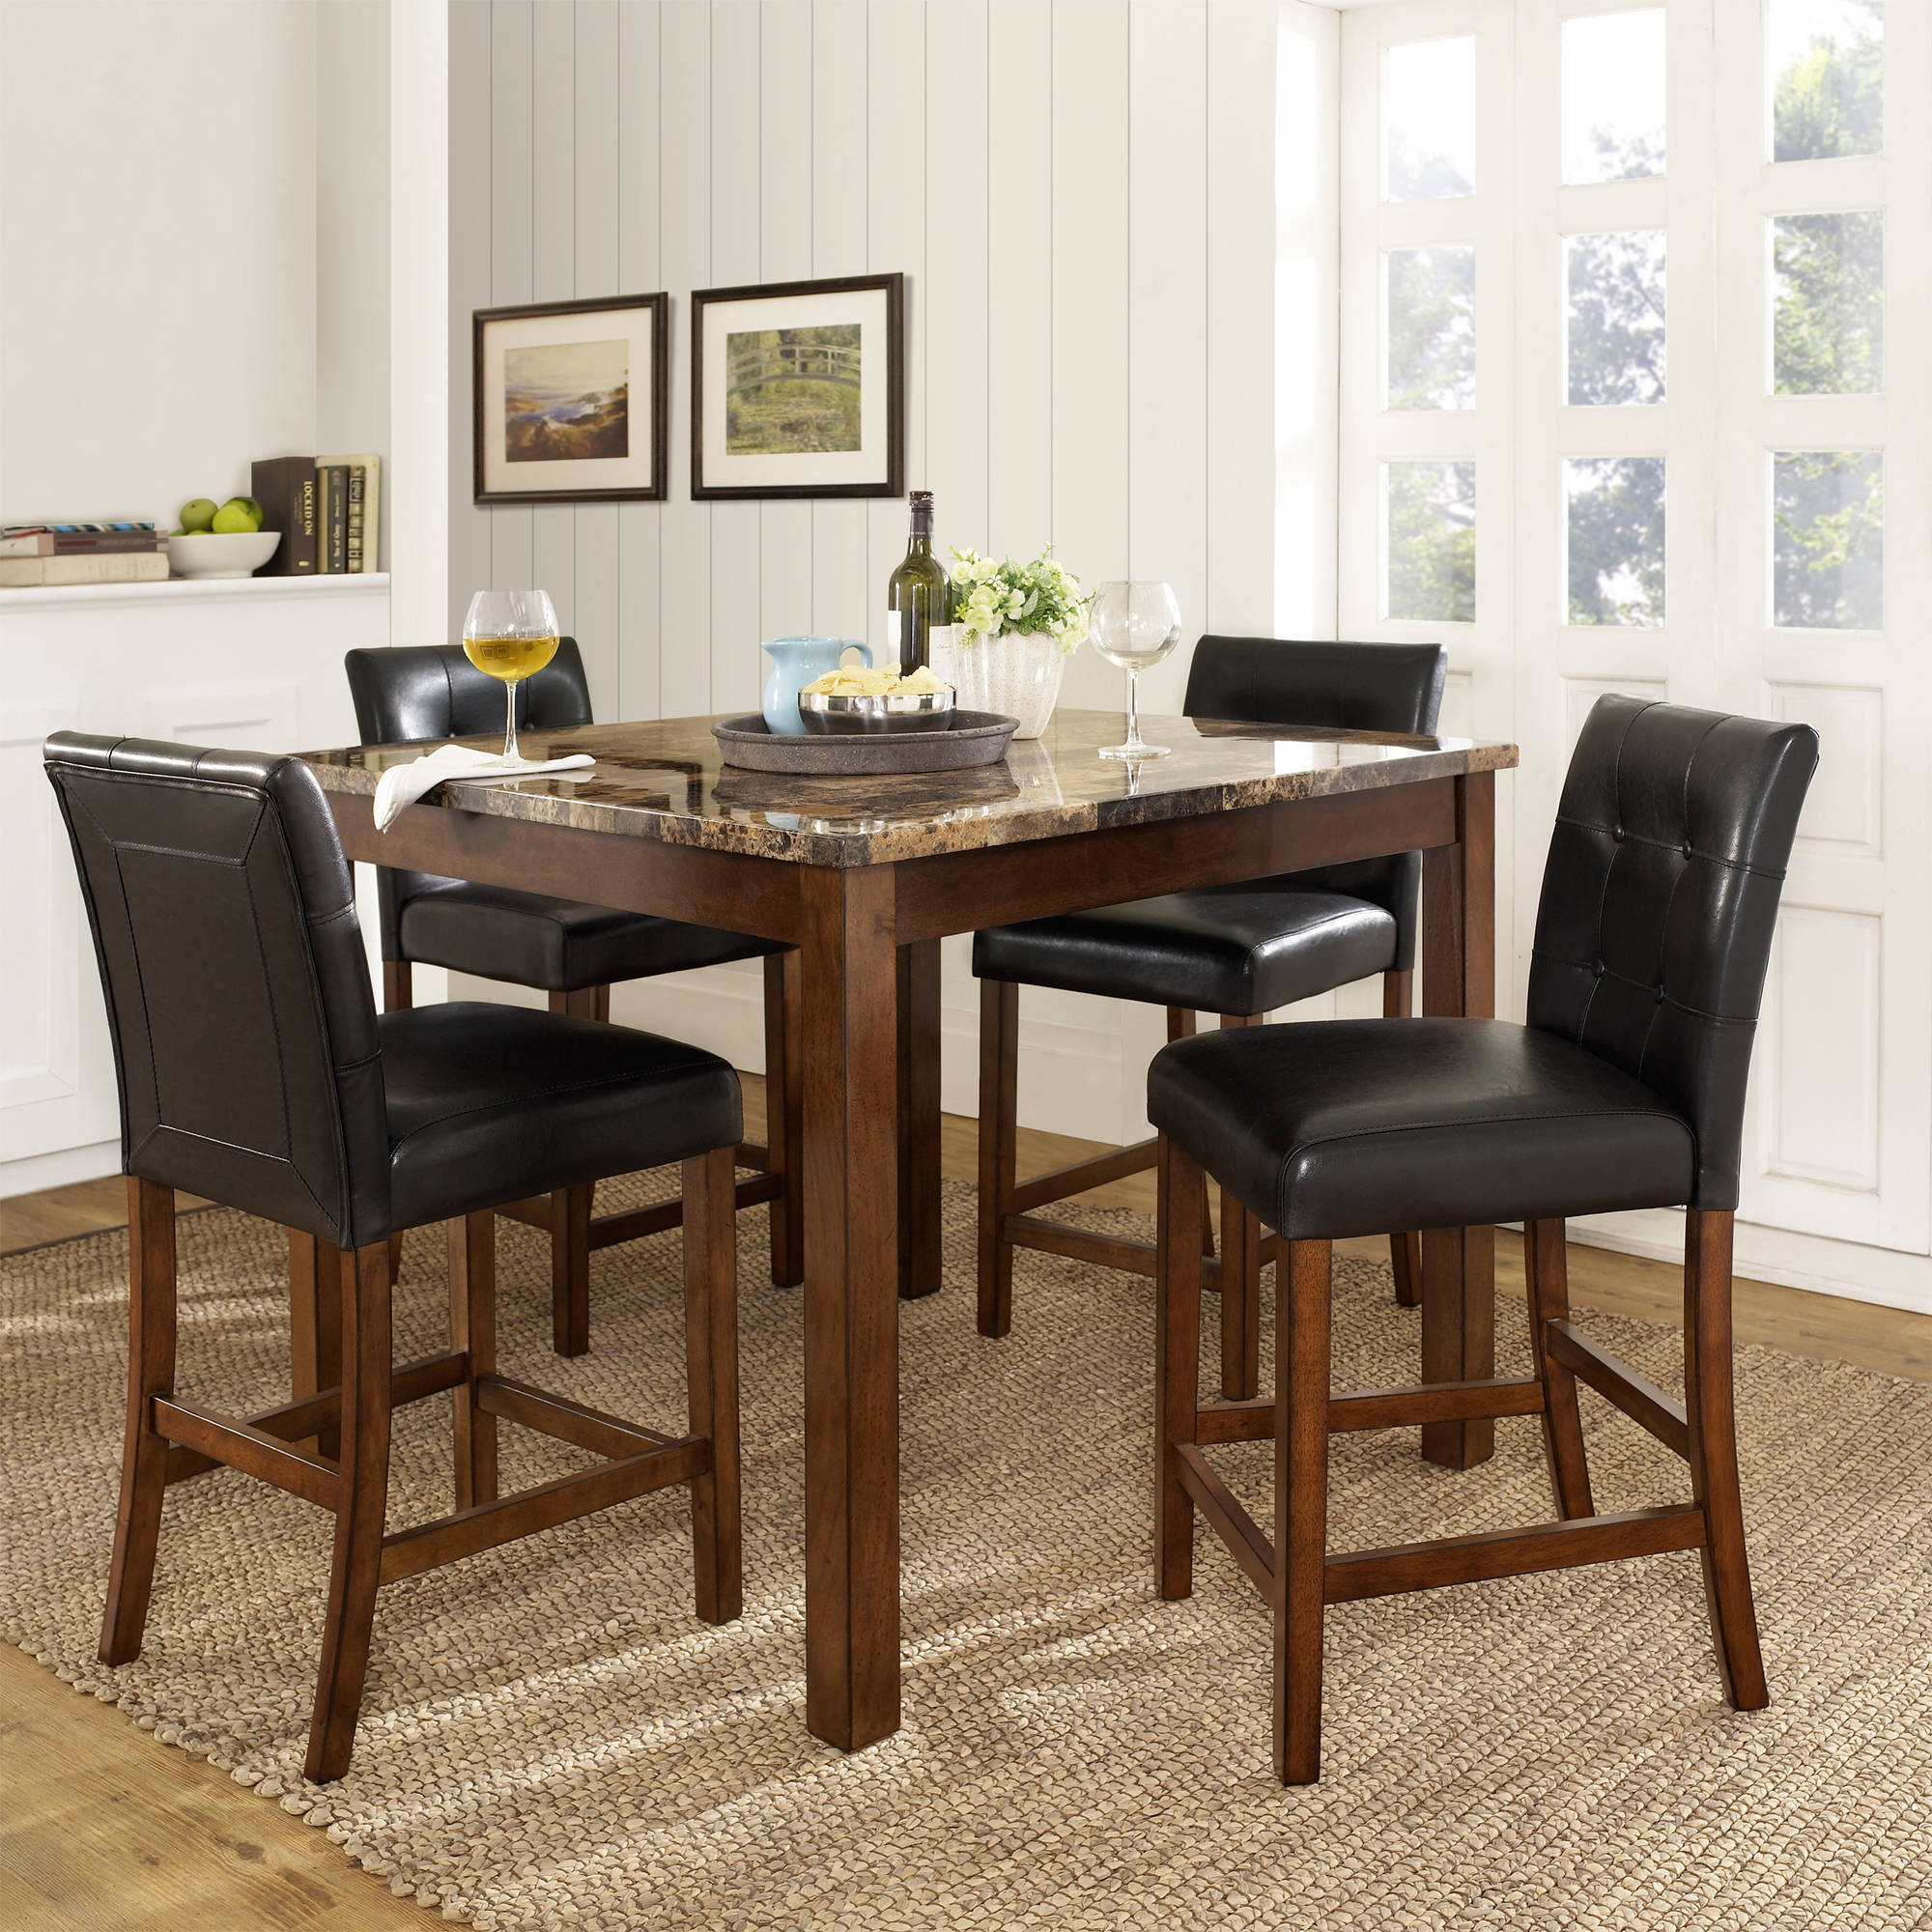 Dorel living andover 5 piece faux marble counter height dining set multiple colors walmart com